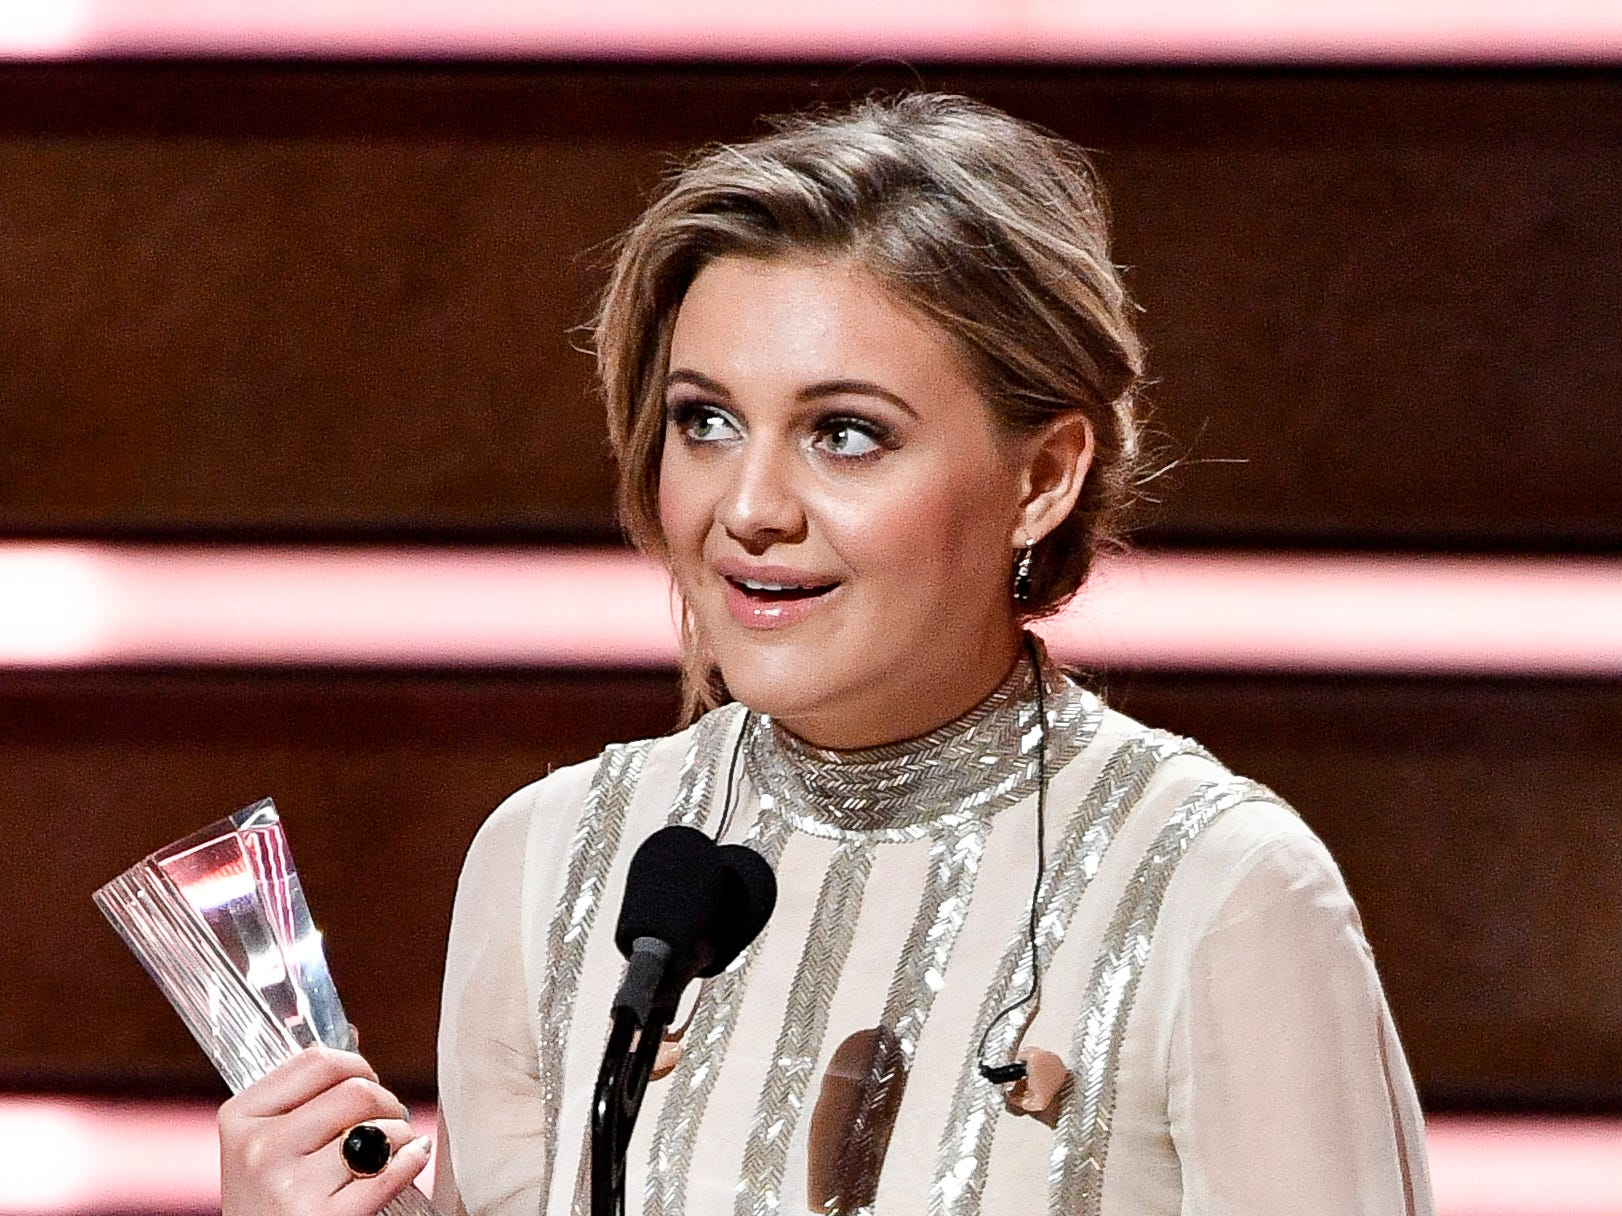 Kelsea Ballerini speaks after receiving her award during the CMT Artists of the Year ceremony at the Schermerhorn Symphony Center in Nashville, Tenn., Wednesday, Oct. 17, 2018.